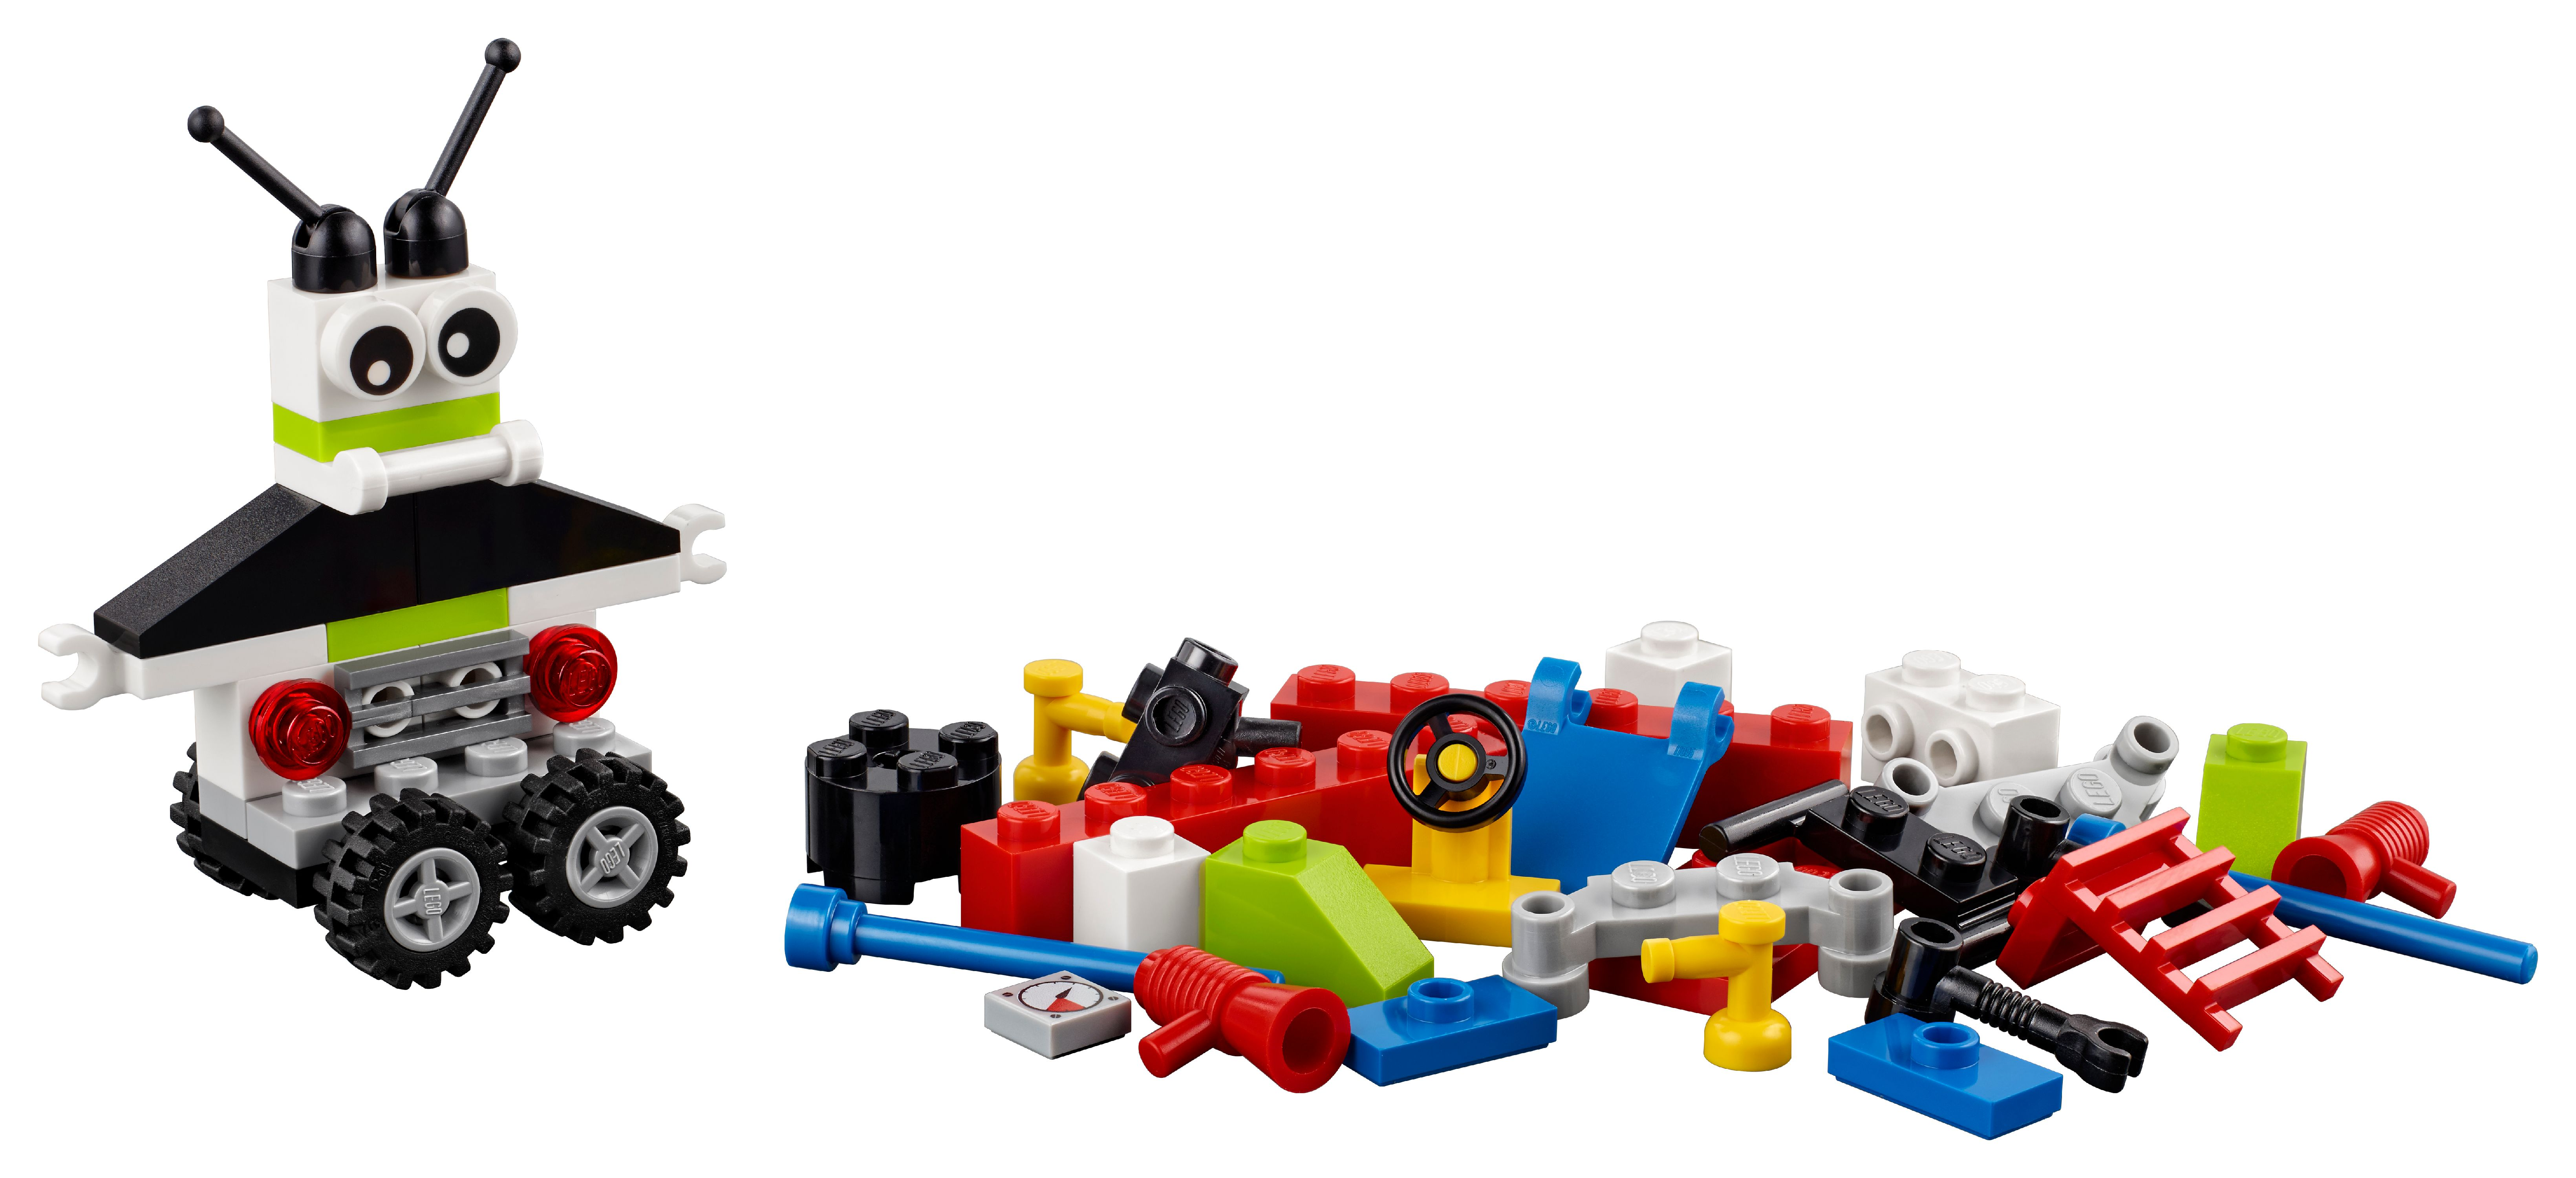 Lego Creator Robotvehicle Free Builds Make It Yours 30499